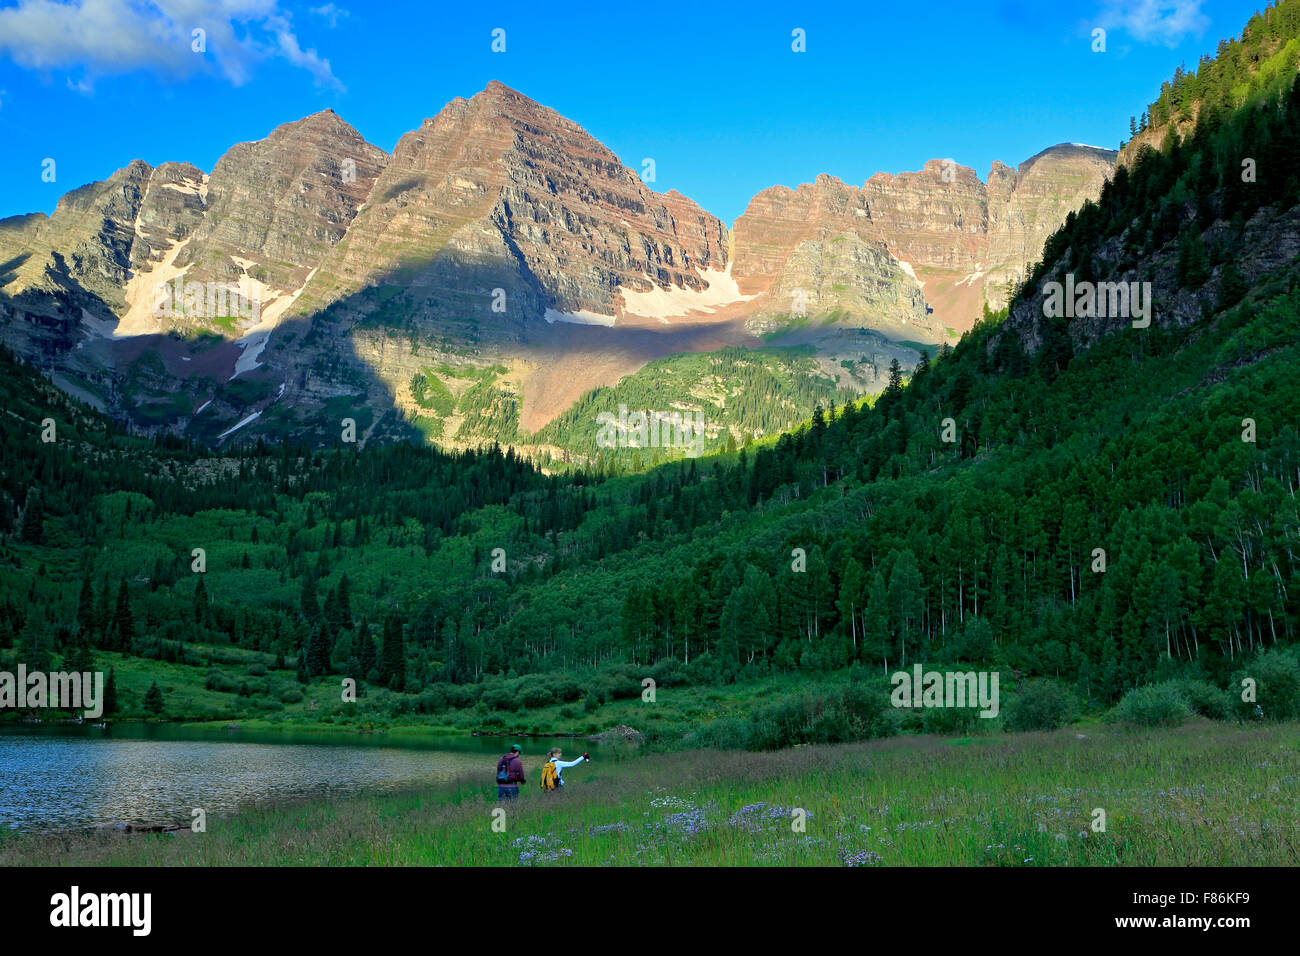 Hikers below the Maroon Bells, White River National Forest, Aspen, Colorado USA - Stock Image